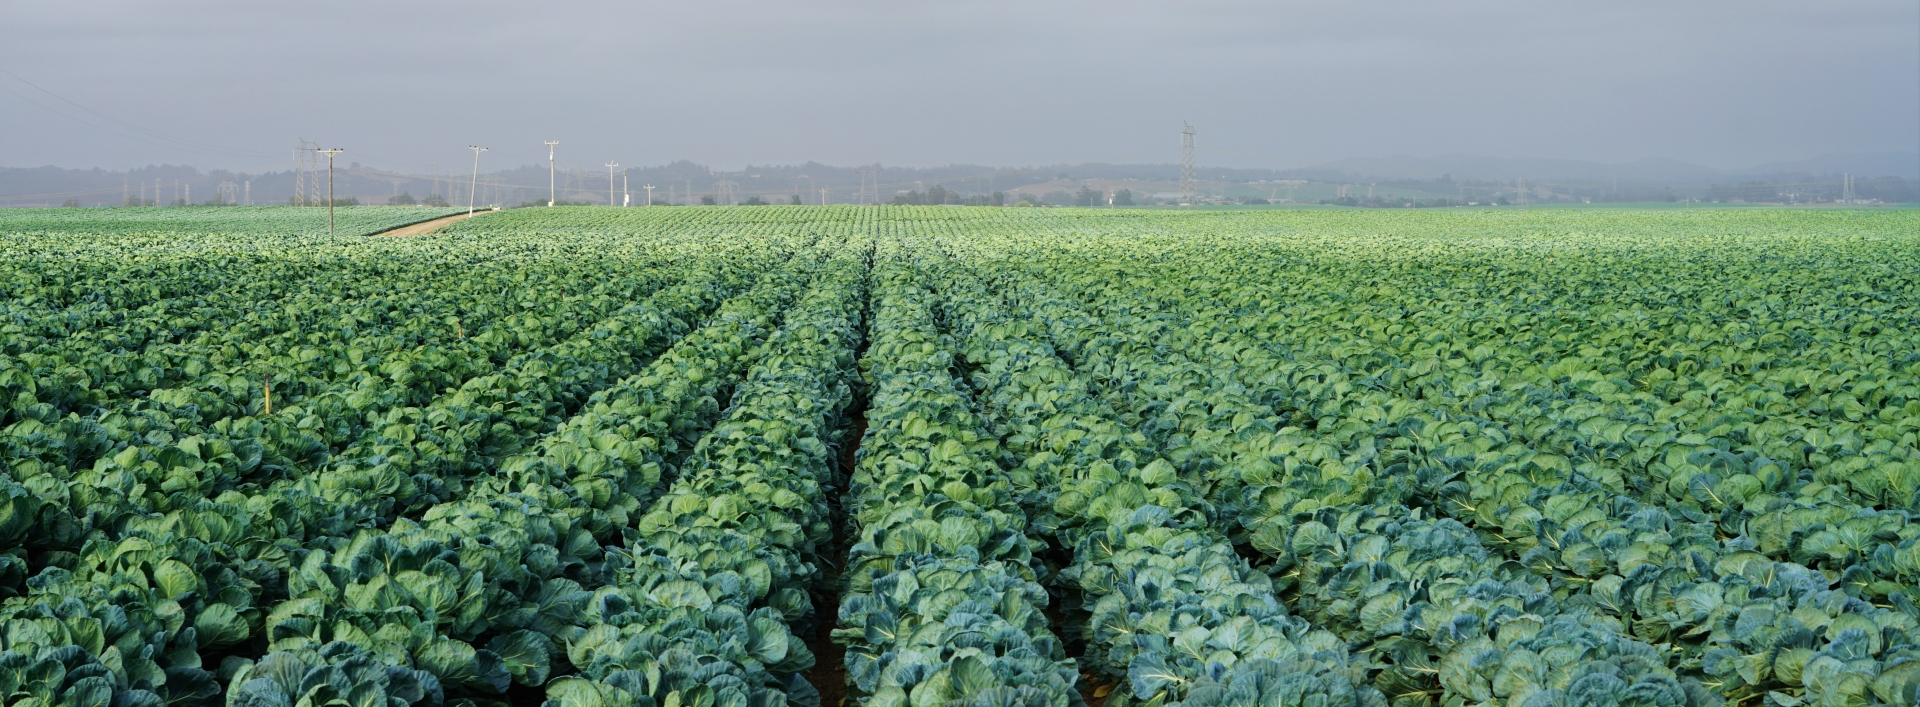 Rows of crops in a field, credit Peter Gonzalez